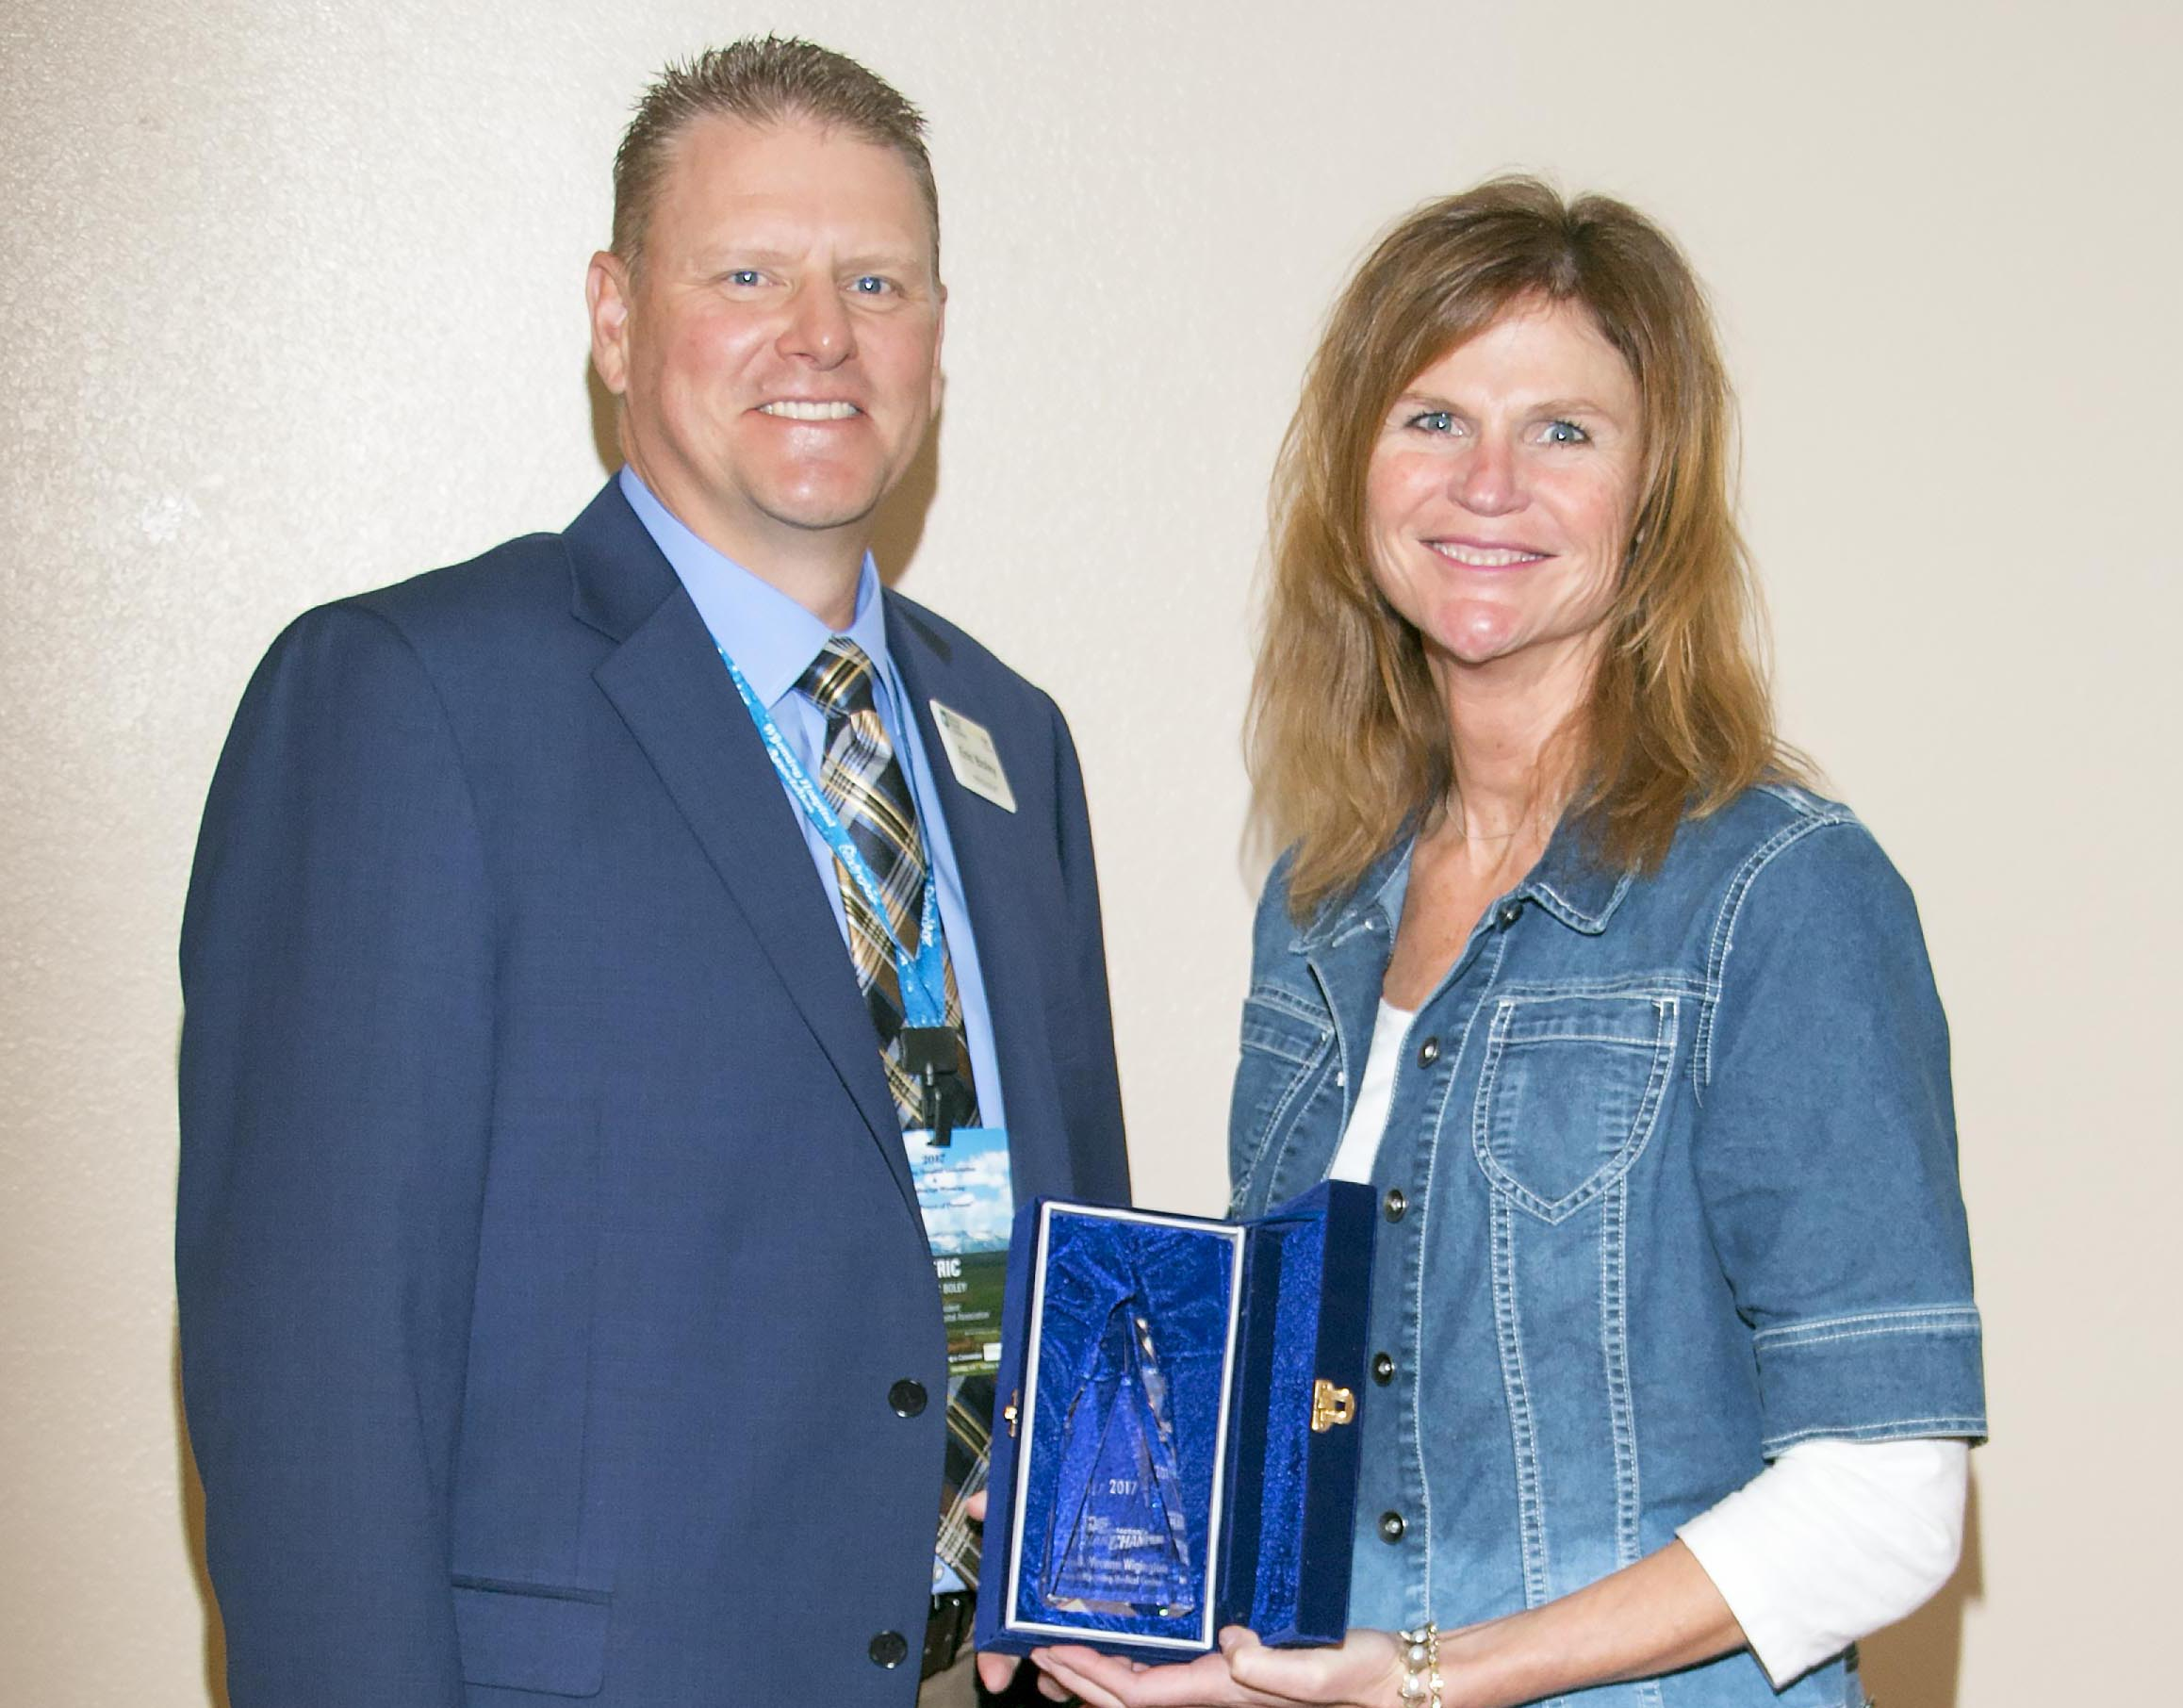 WMC chief financial officer honored by Wyoming Hospital Association ...